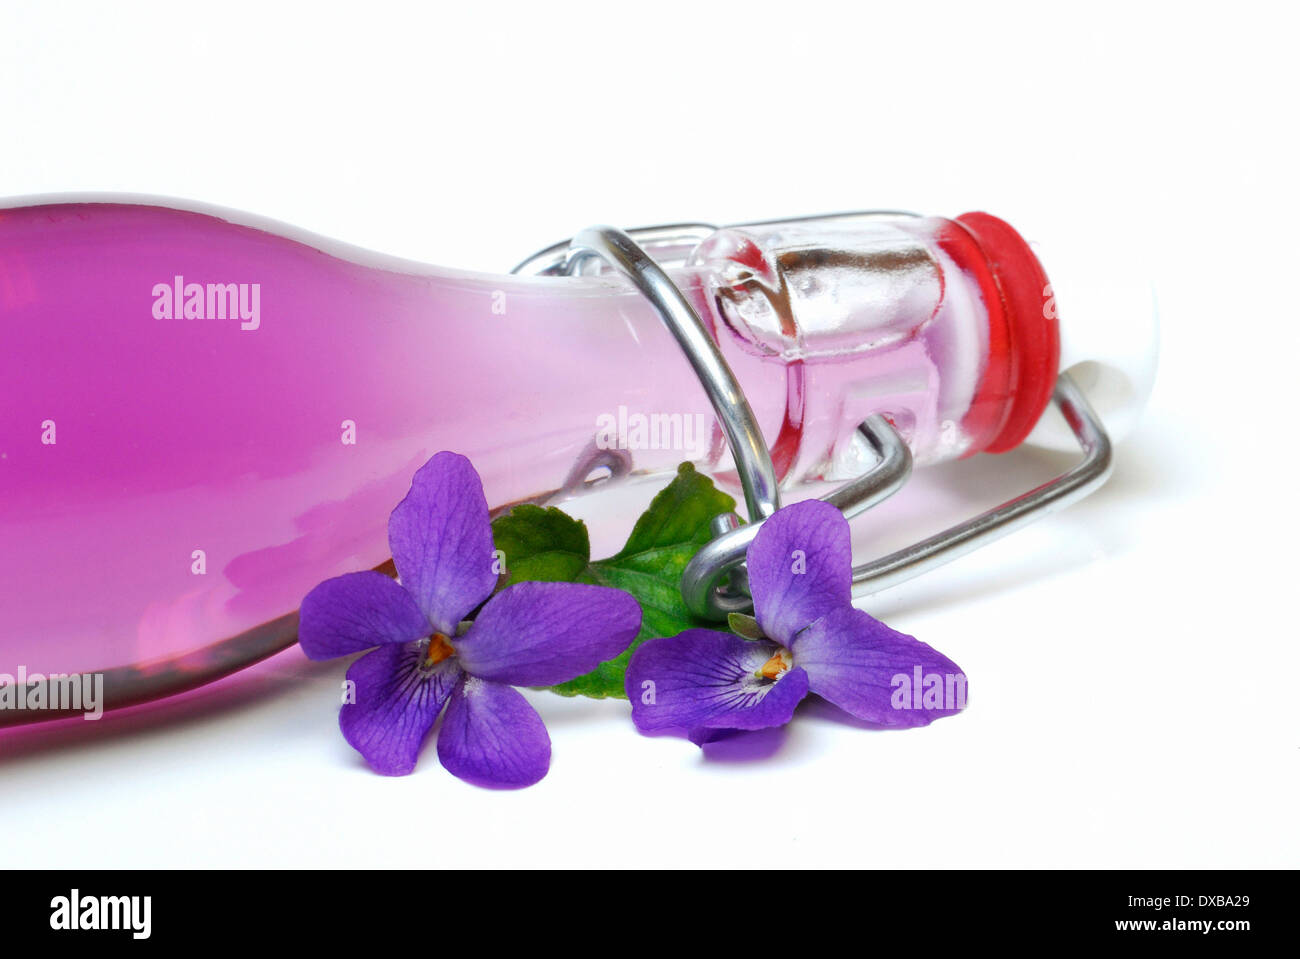 Violet sirup - Stock Image